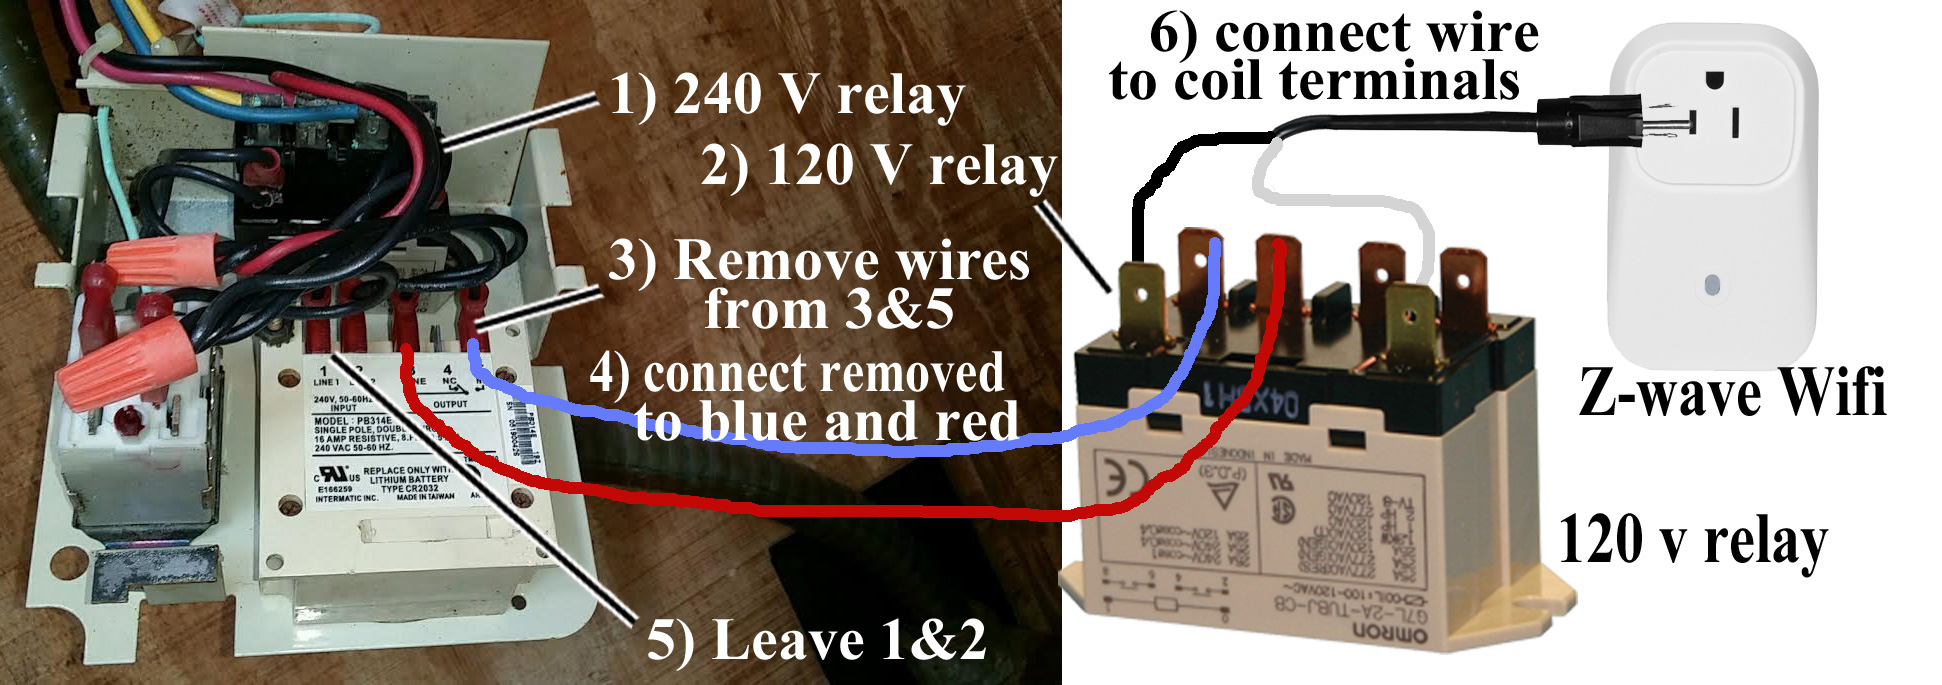 How To Wire Woods 50054 Wion Contactor Wifi Relay Z Wave Switch Wiring Larger Image Or Module Replaces Timer In Pf1102 Pool With Freeze Control This Is Specialized Adaptation Answer An Email